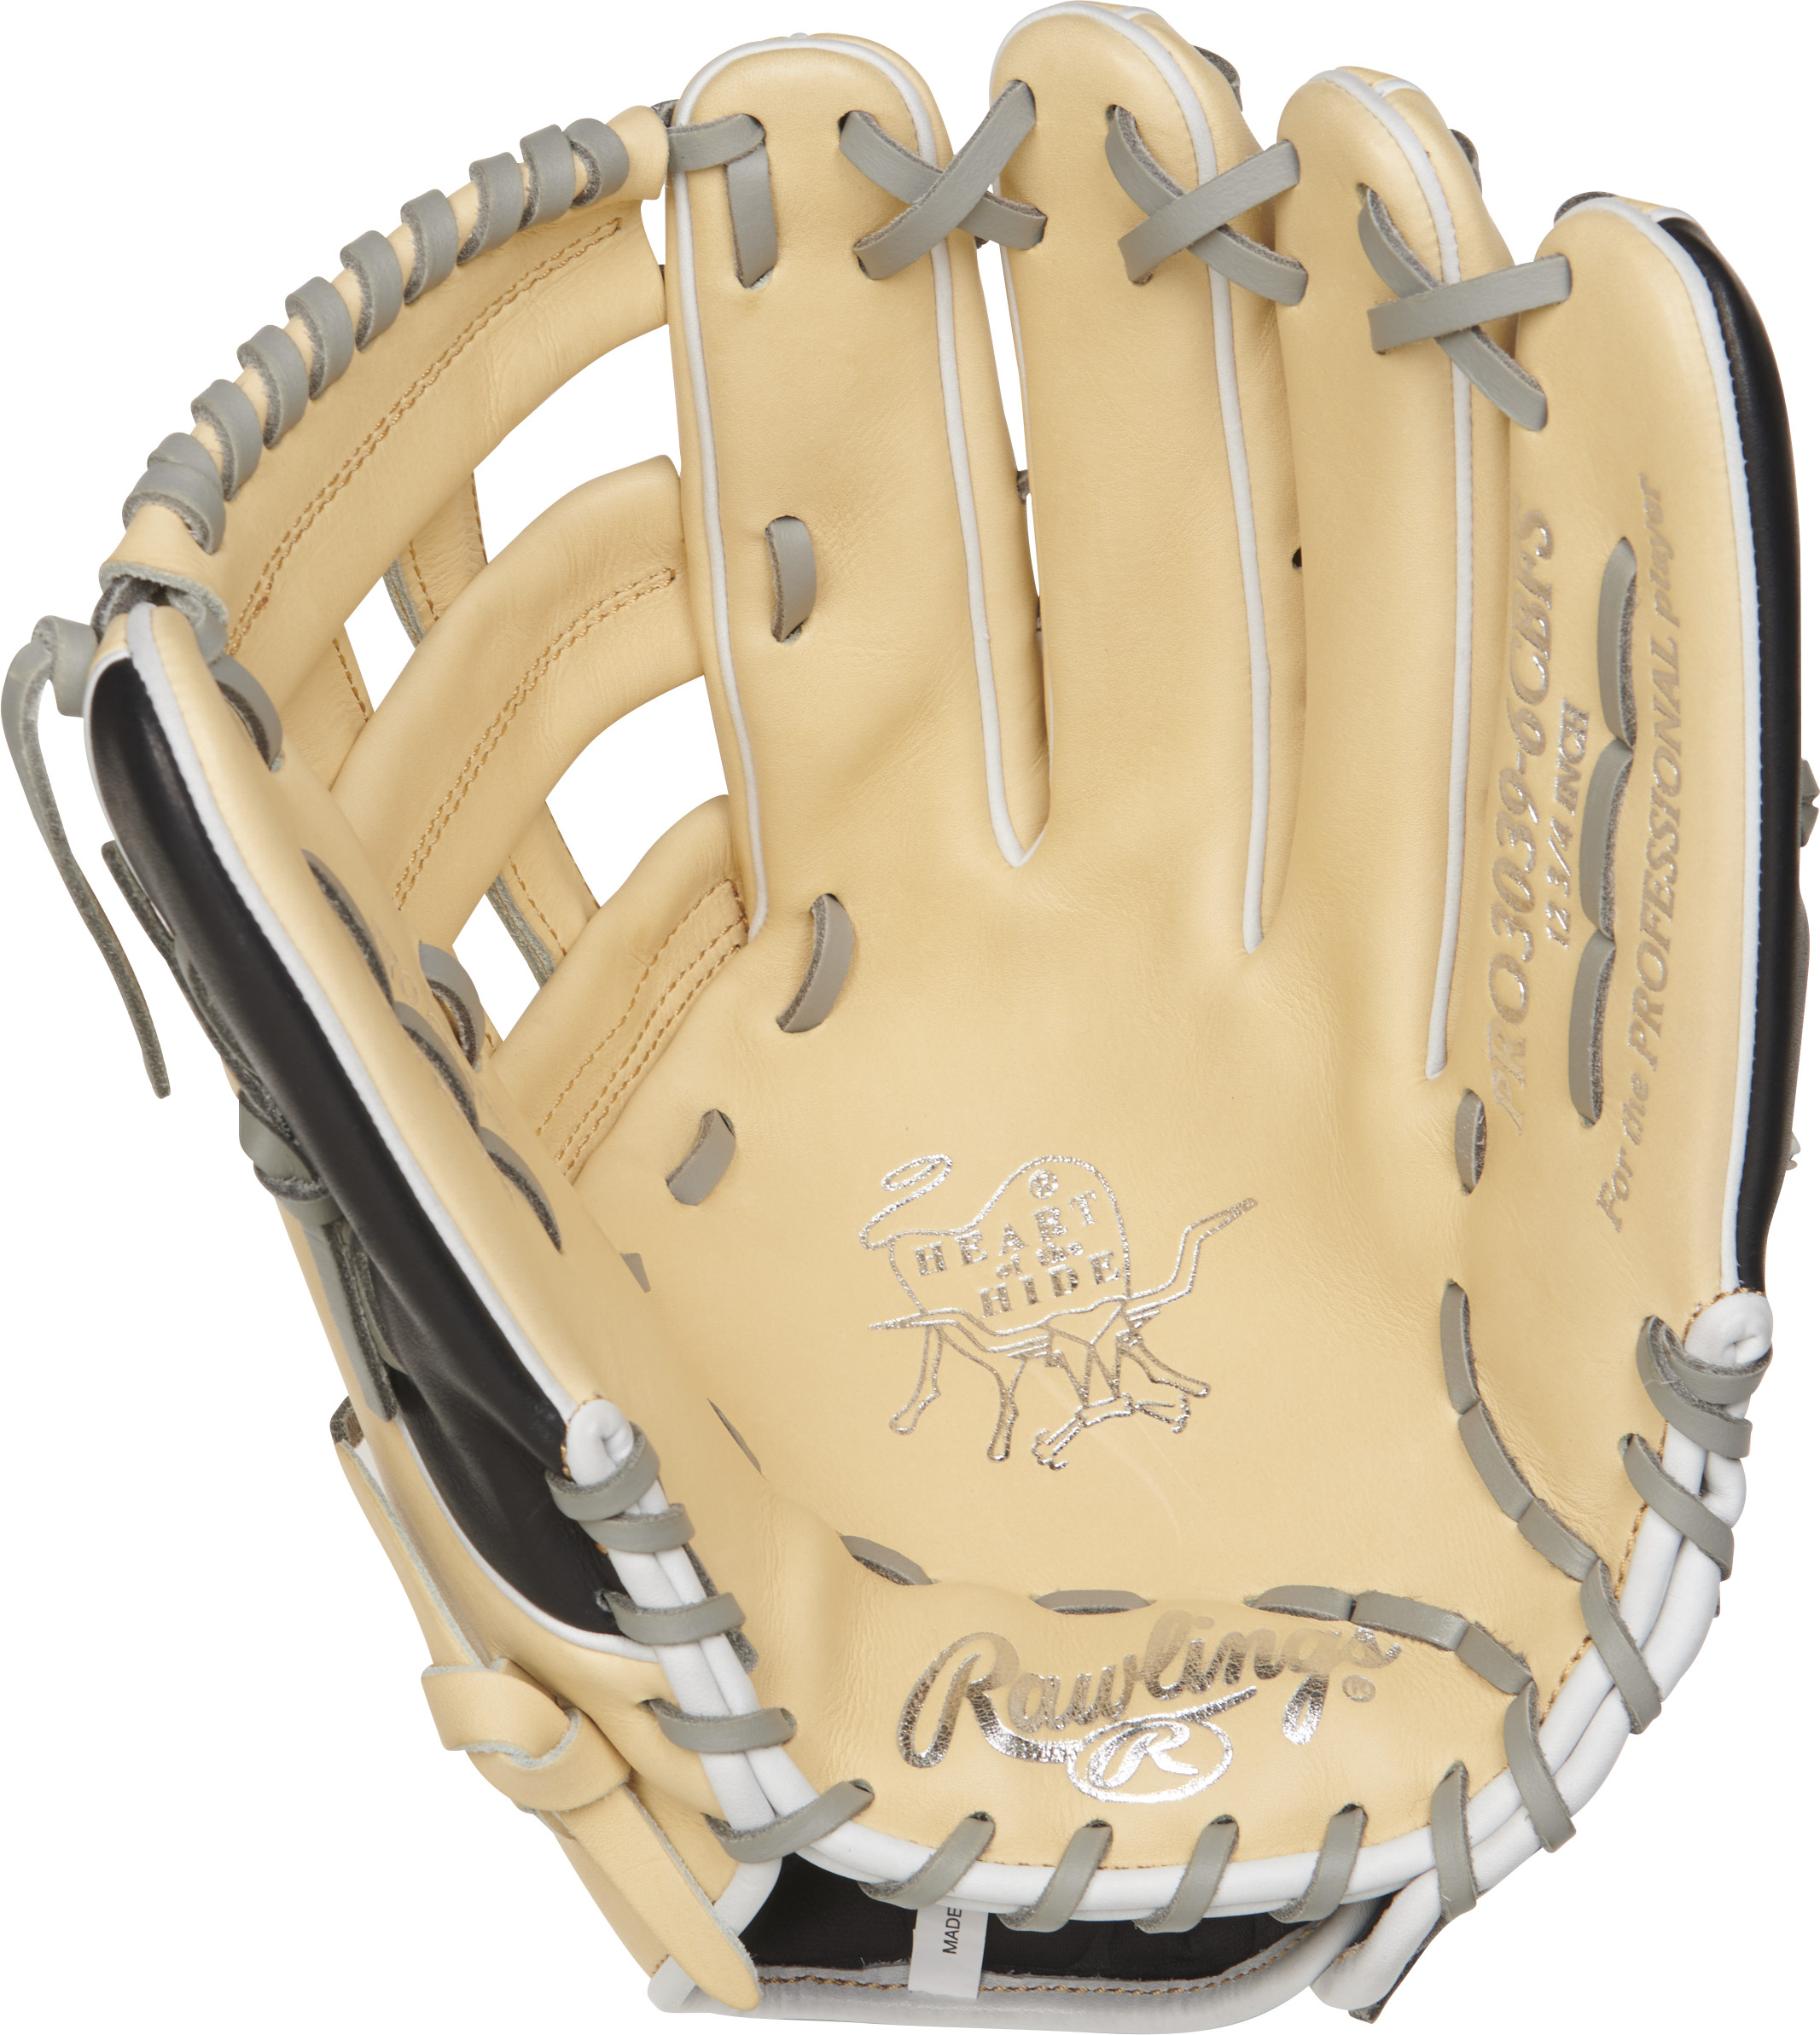 http://www.bestbatdeals.com/images/gloves/rawlings/PRO3039-6CBFS-1.jpg